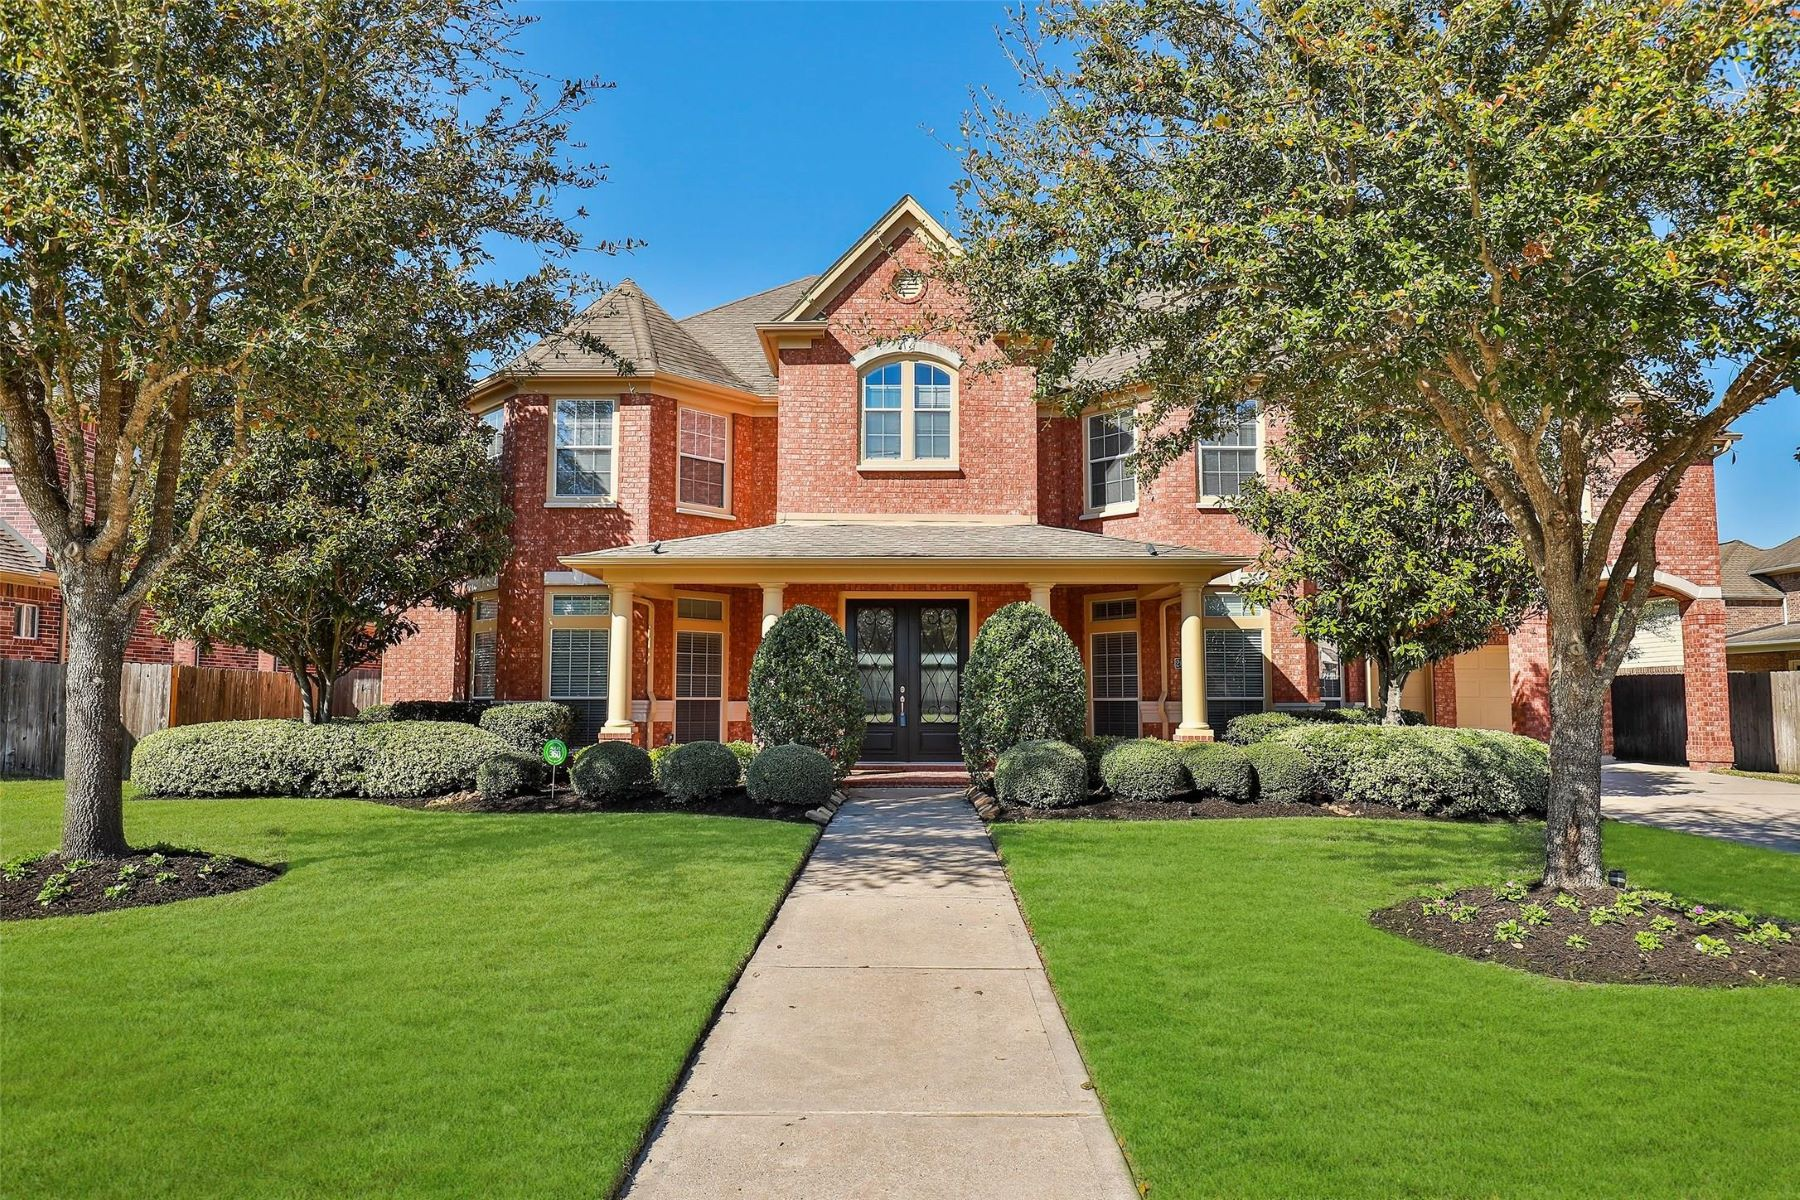 Single Family Homes for Sale at 26514 Ridgefield Park Lane Cypress, Texas 77433 United States